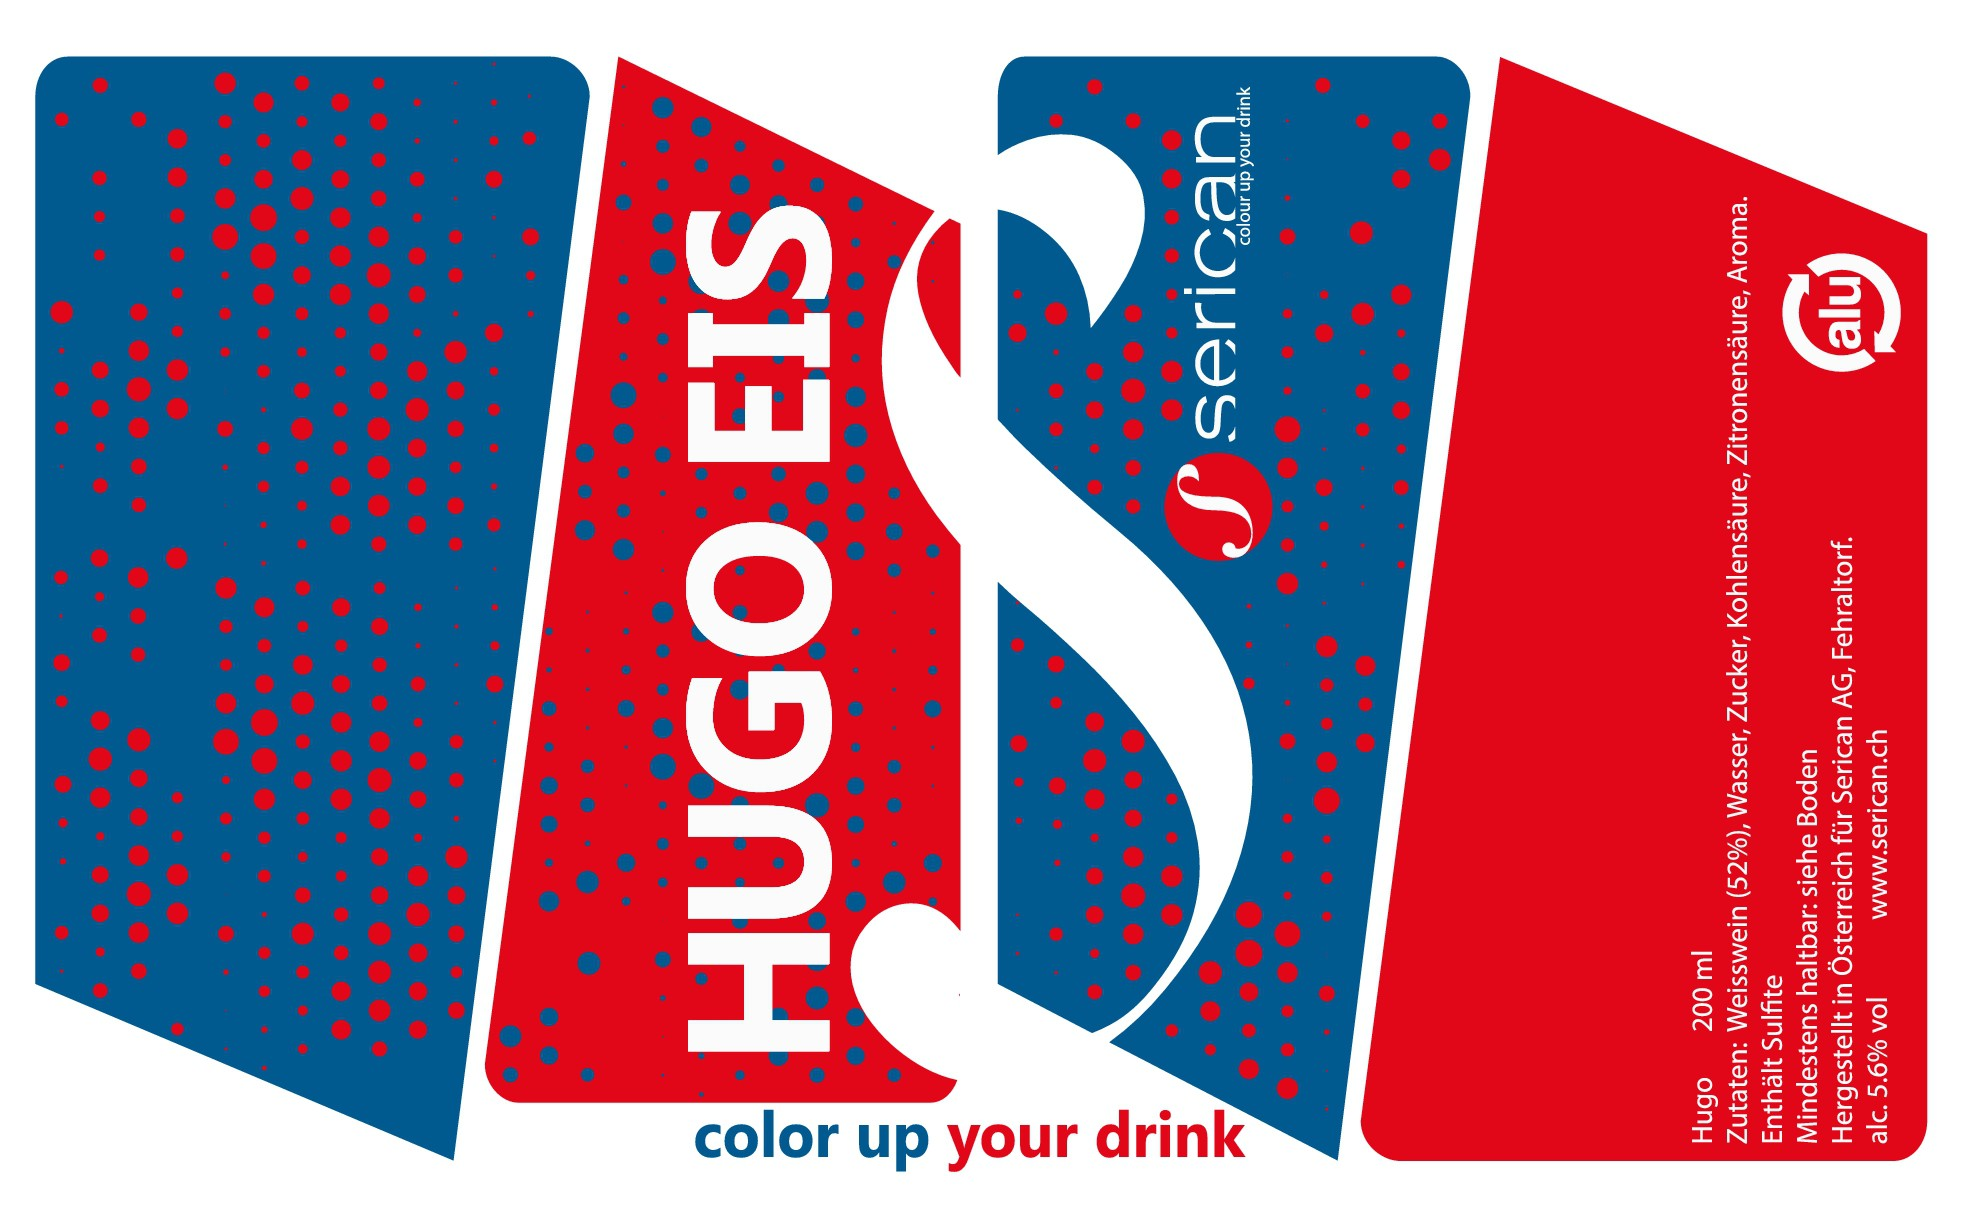 Colour up your drink